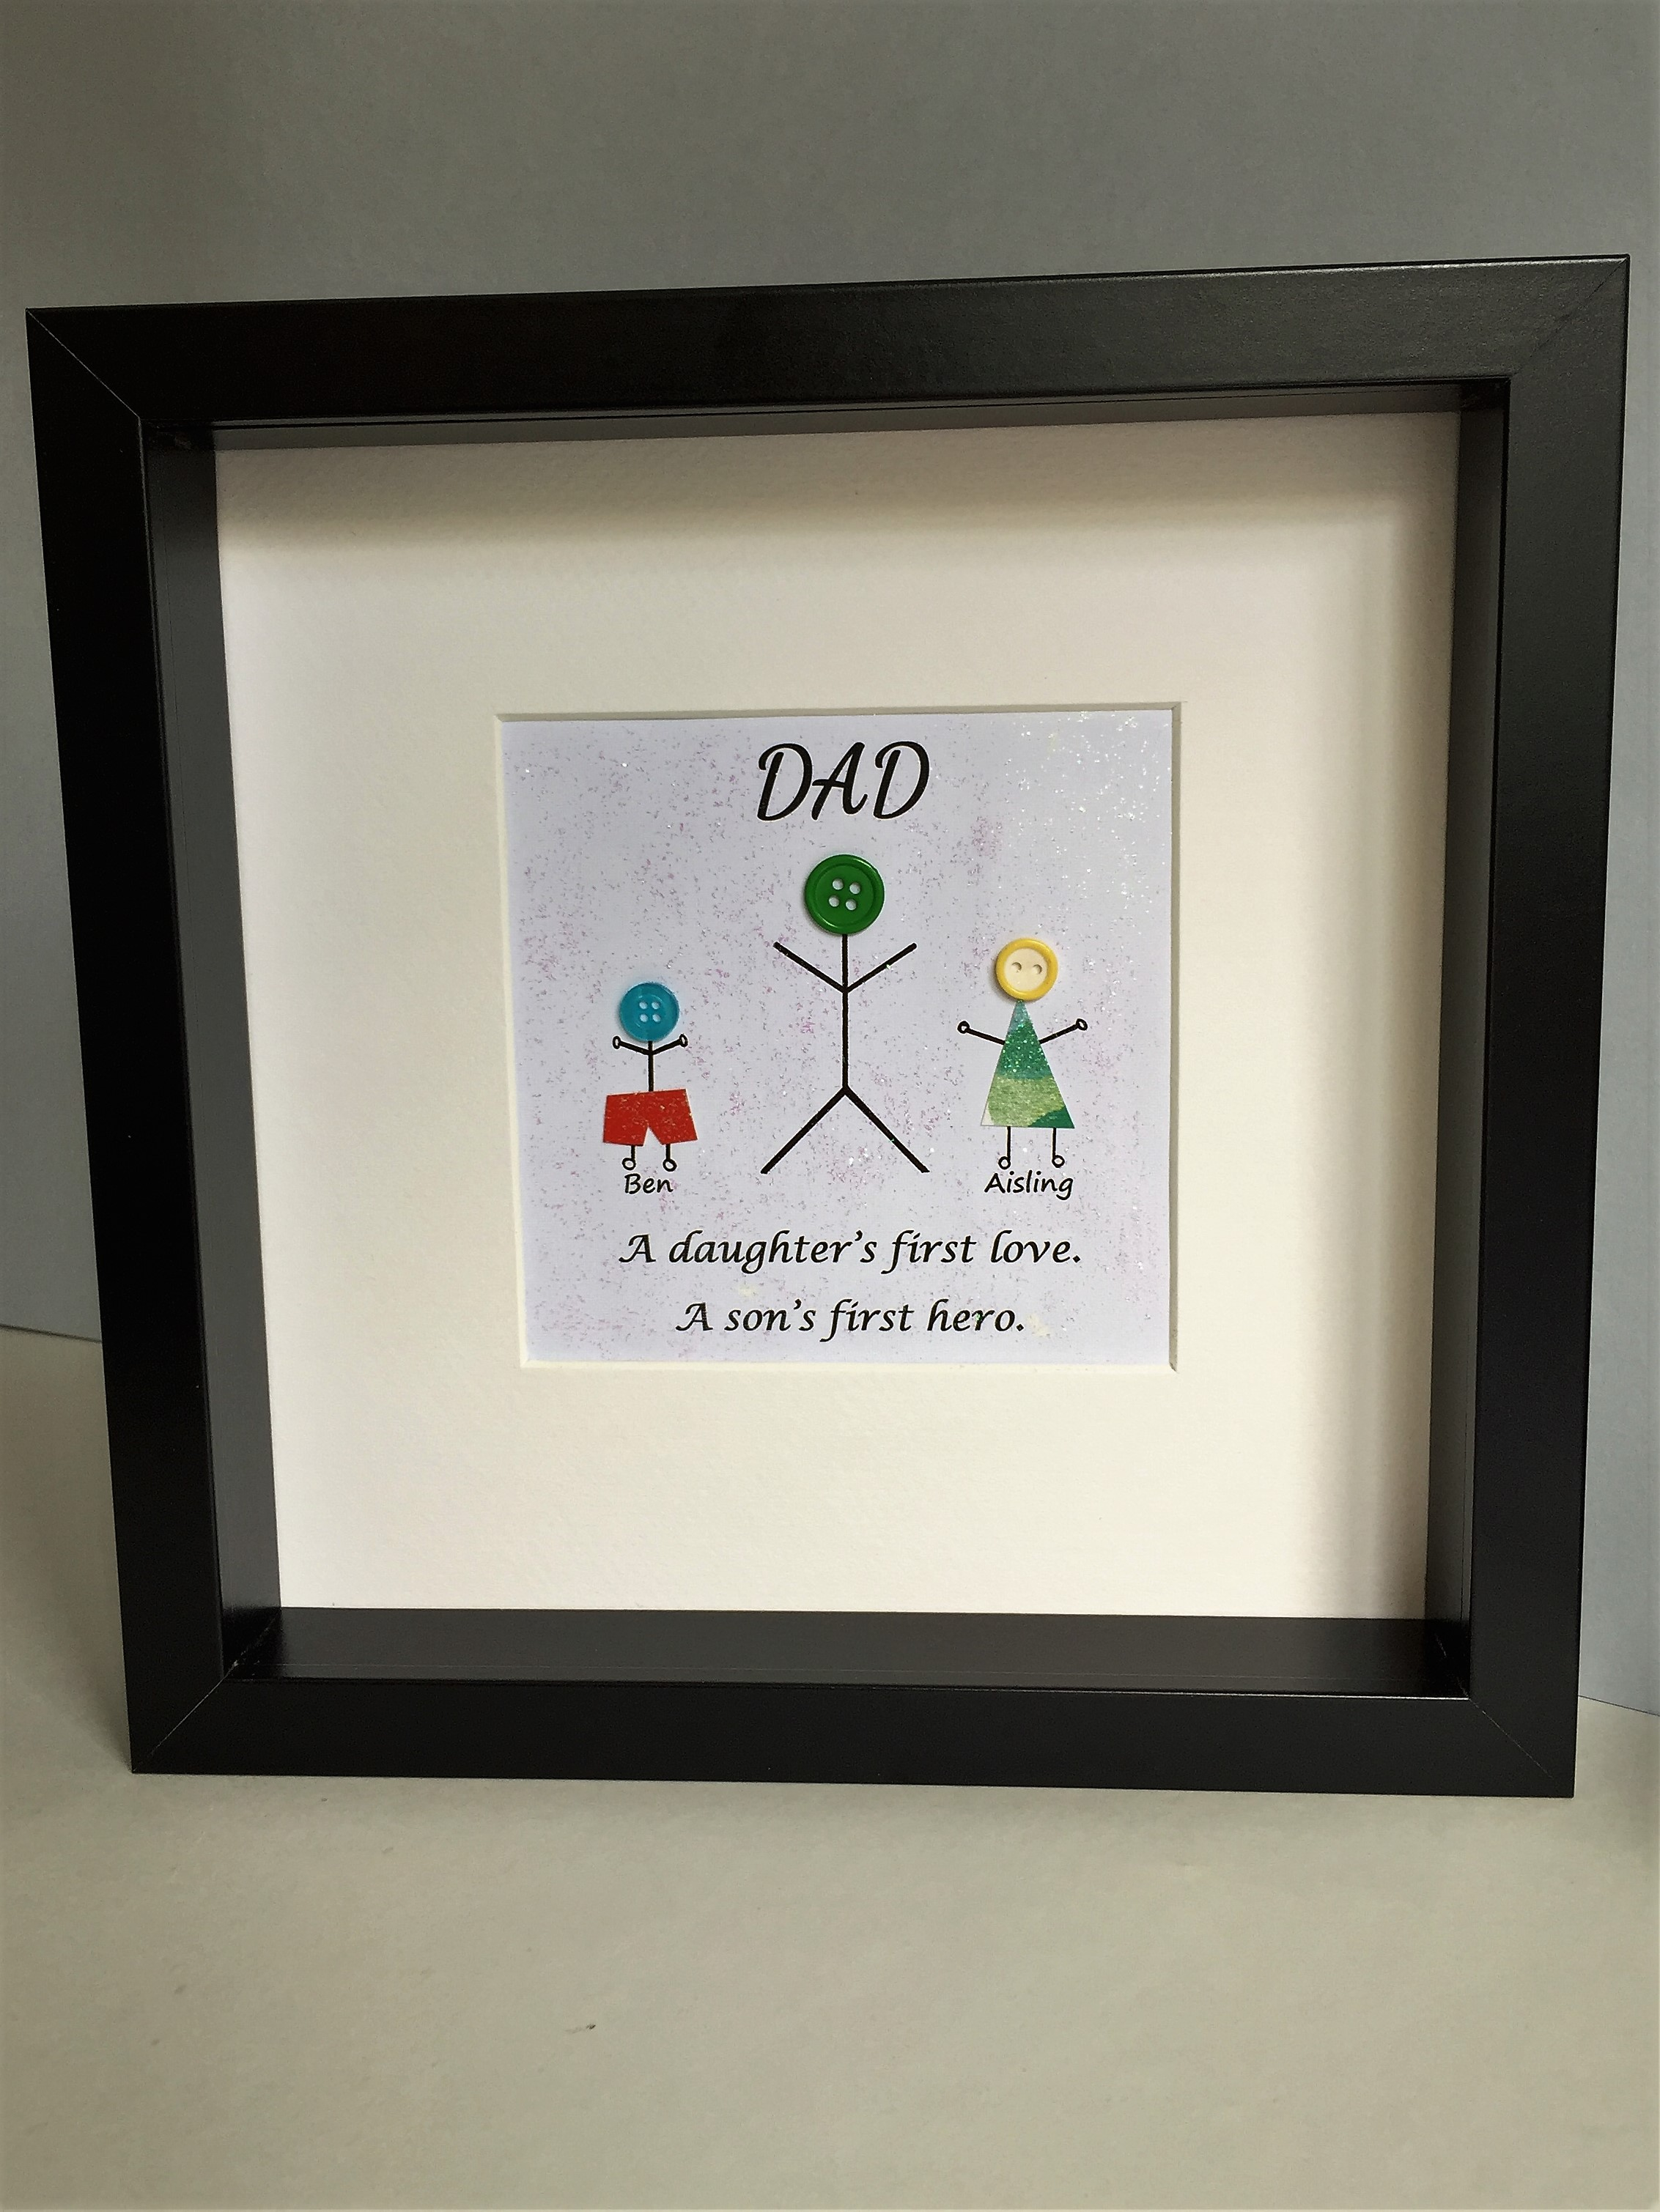 Dad - A daughter's first love. A son's first hero. Framed